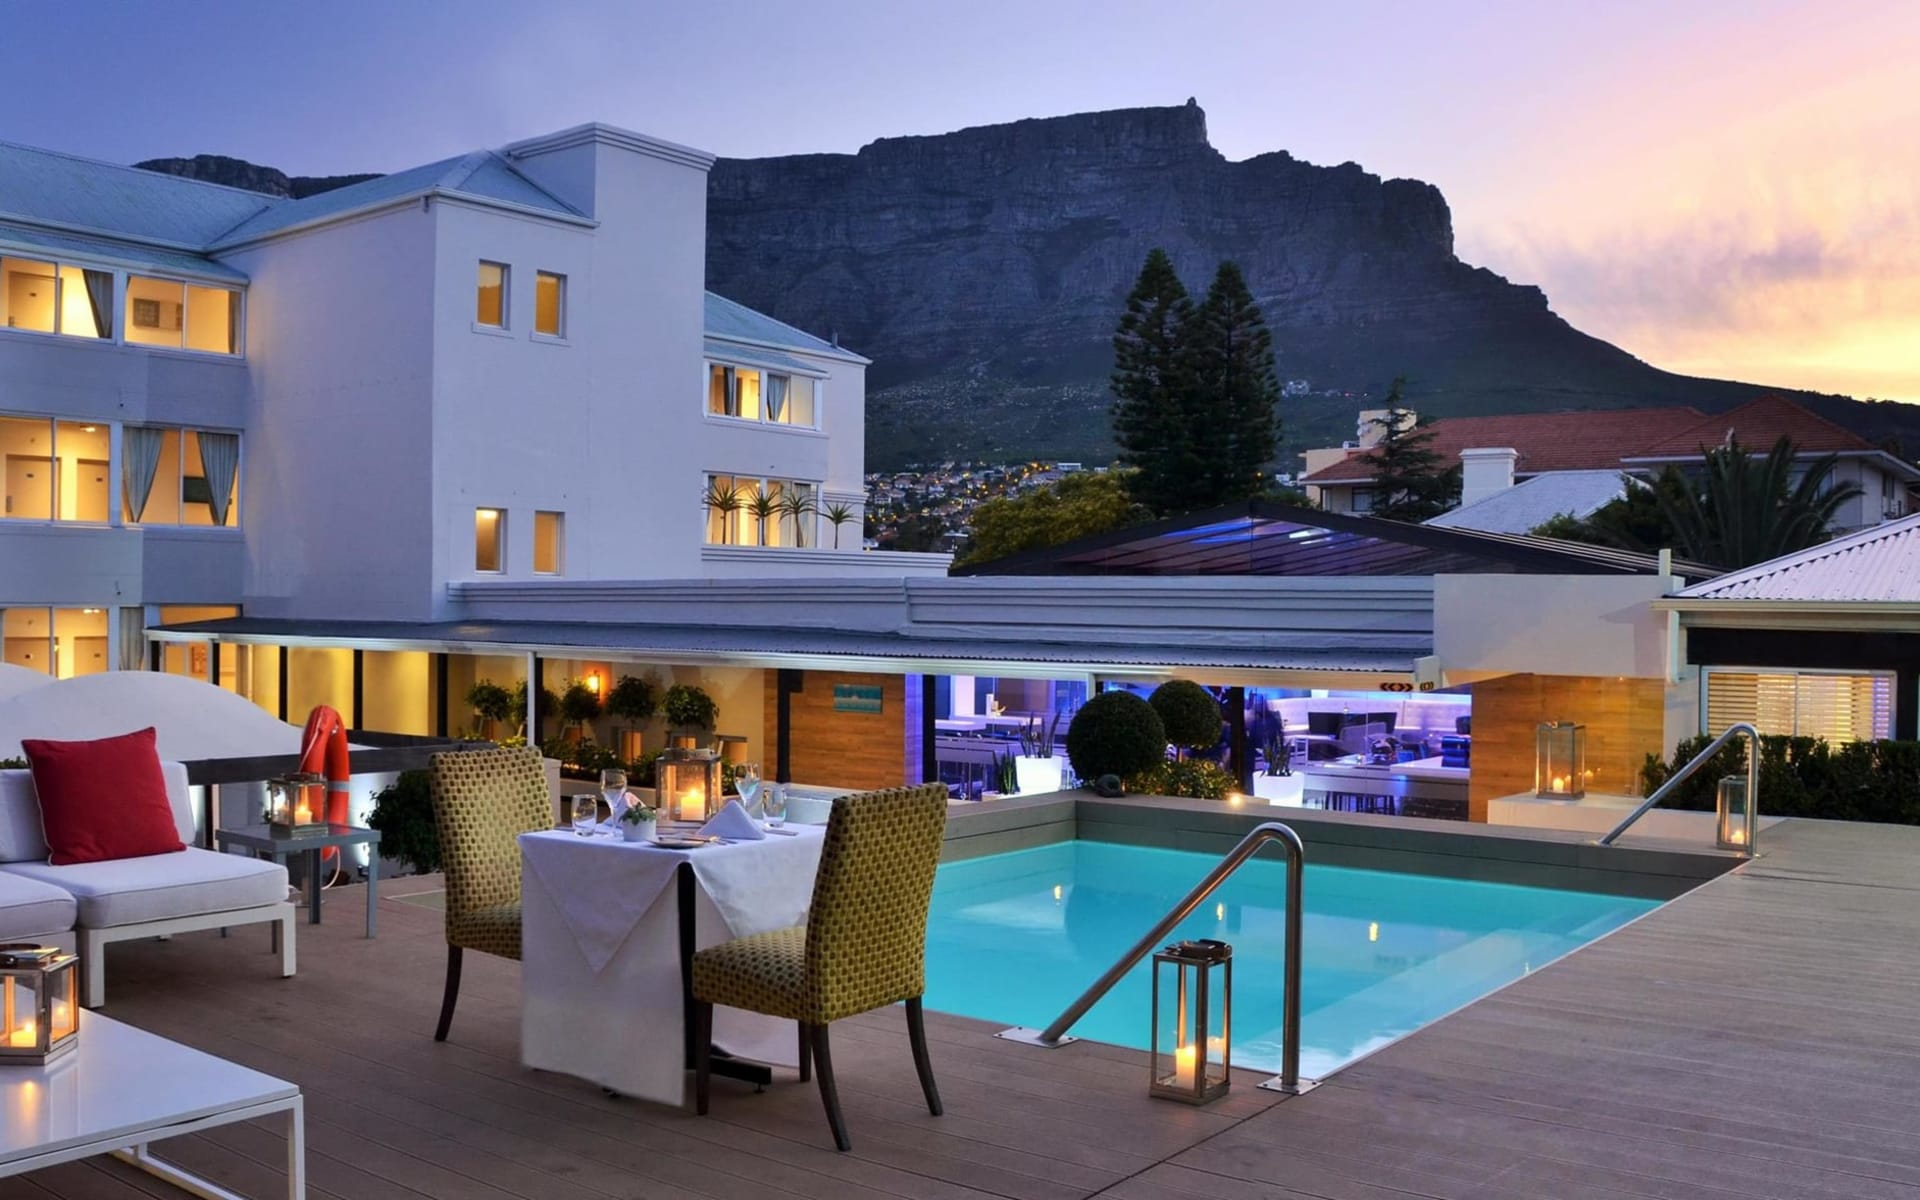 Cape Milner in Tamboerskloof: facilities Cape Milner Hote - Swimmingpool